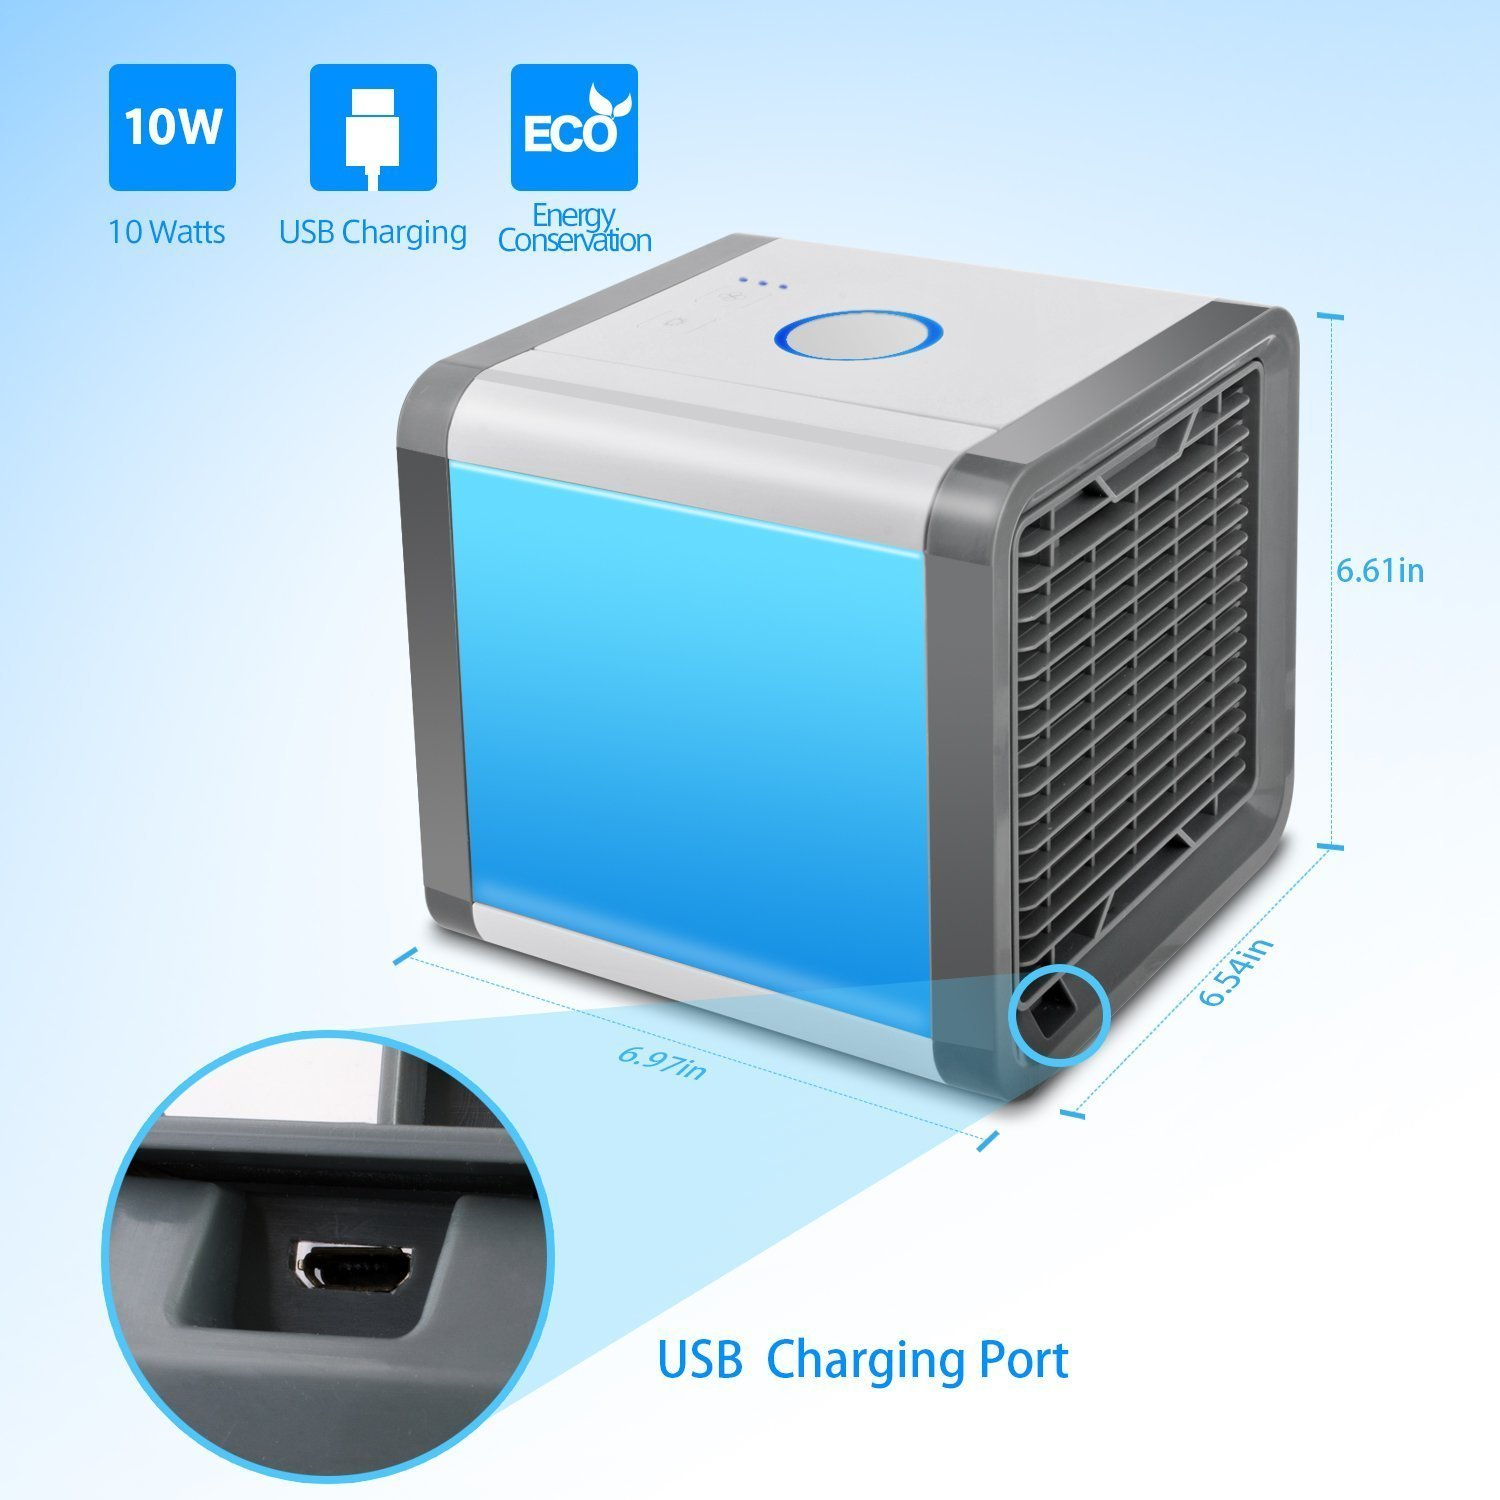 Dingeter Portable Air Conditioner 4 in 1 Mini USB Personal Space Cooler Humidifier Purifier Desktop Cooling Fan